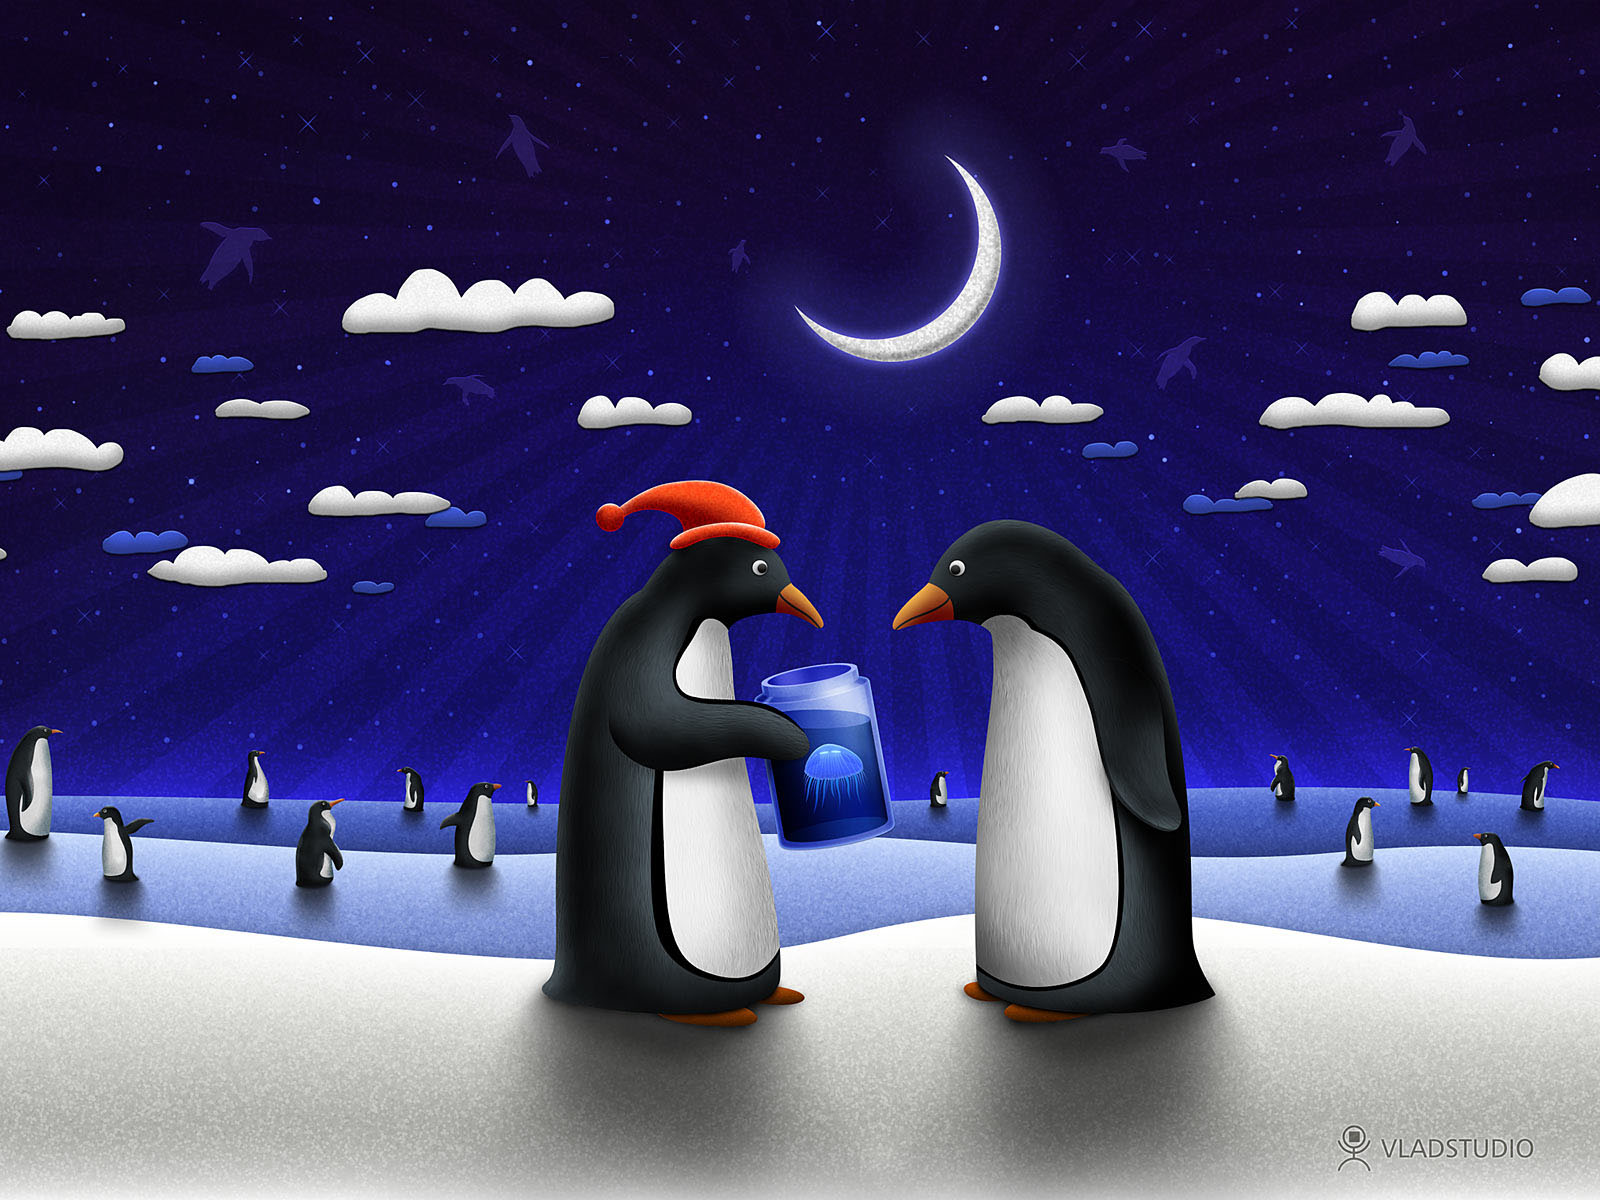 Cute Snowman Christmas Wallpaper 40 Free Christmas Wallpapers Hd Quality 2012 Collection